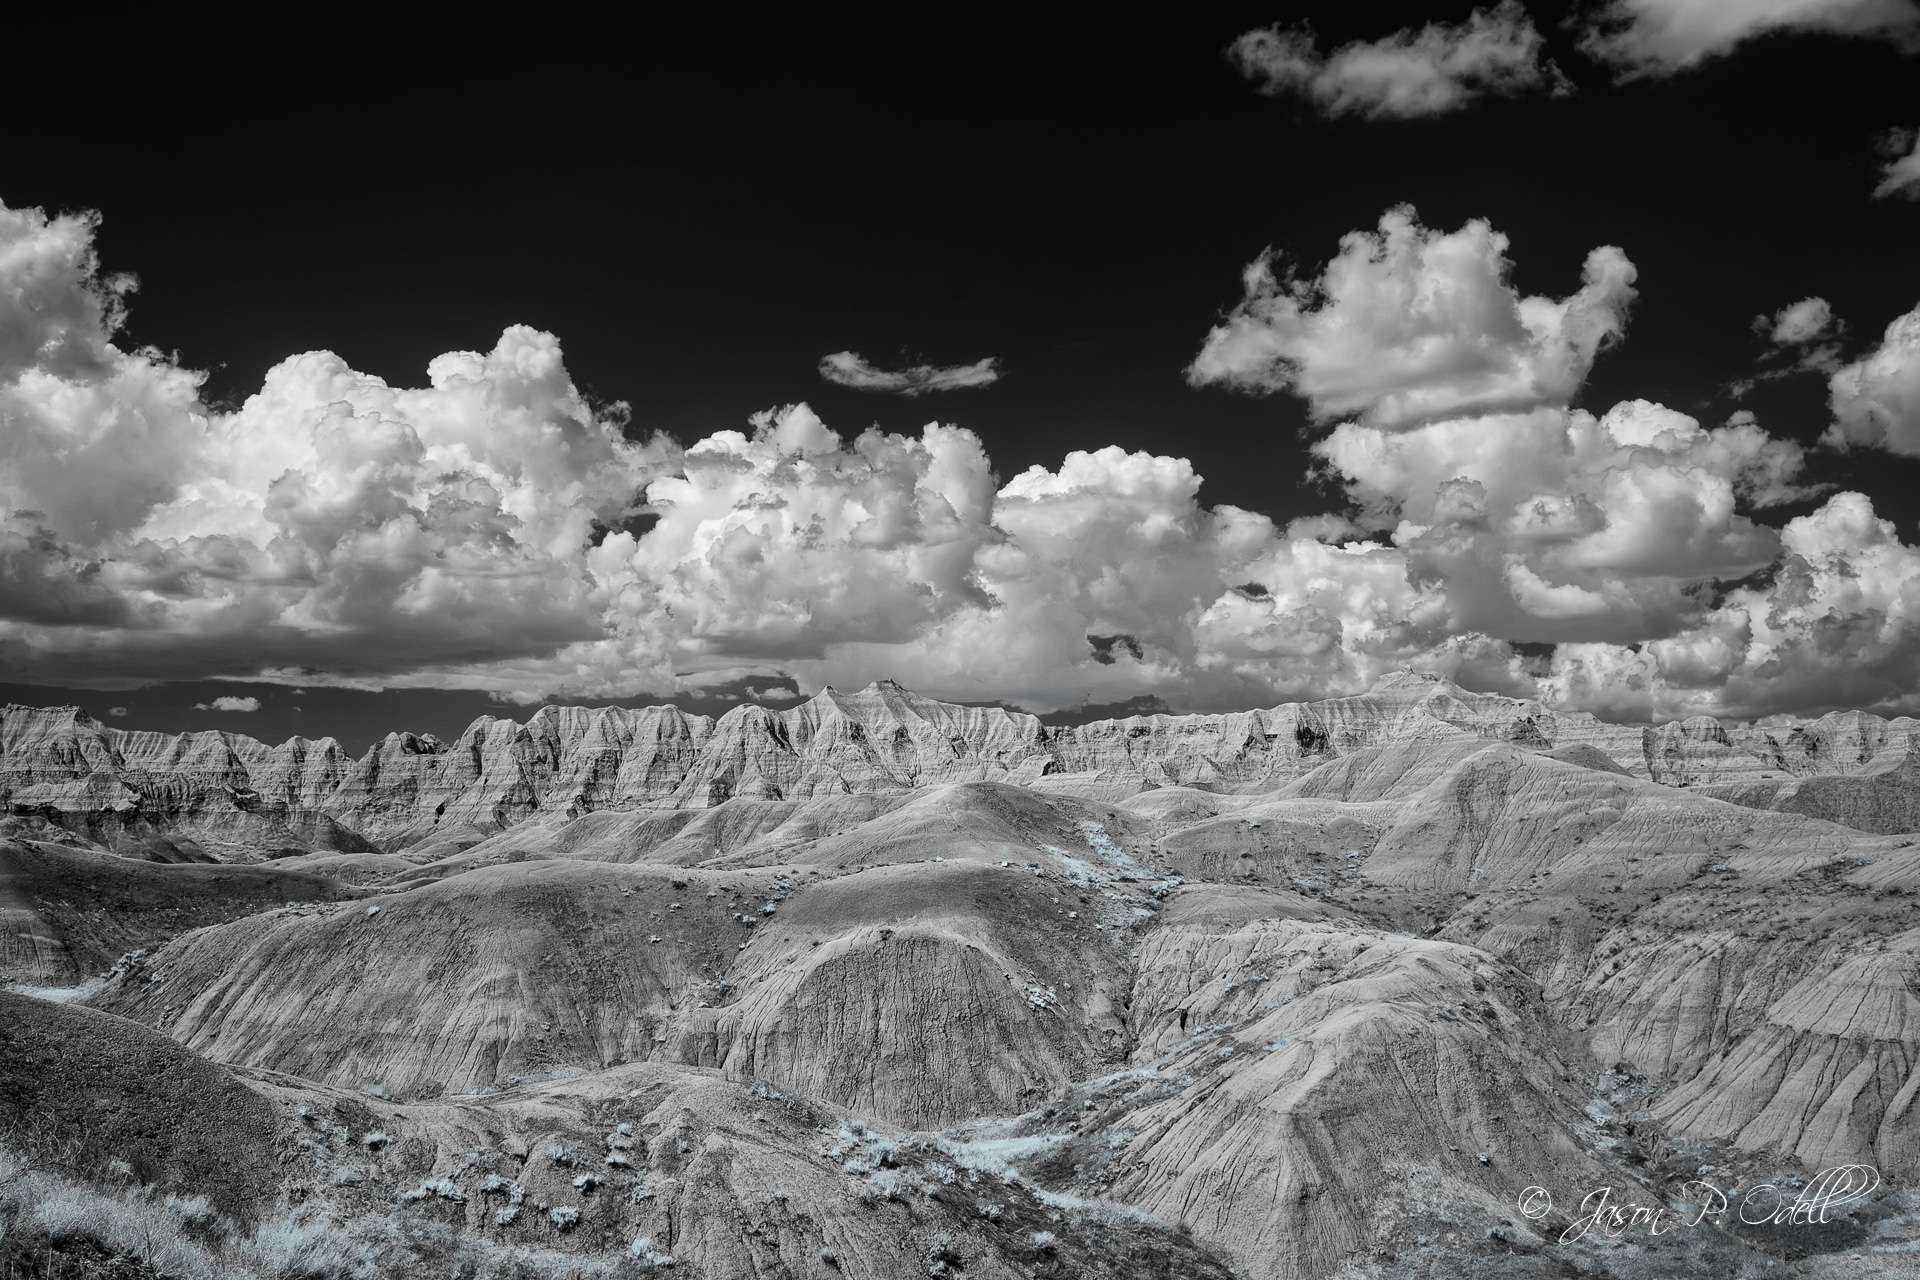 Conata Basin, Badlands National Park, South Dakota, USA. 590nm infrared capture.